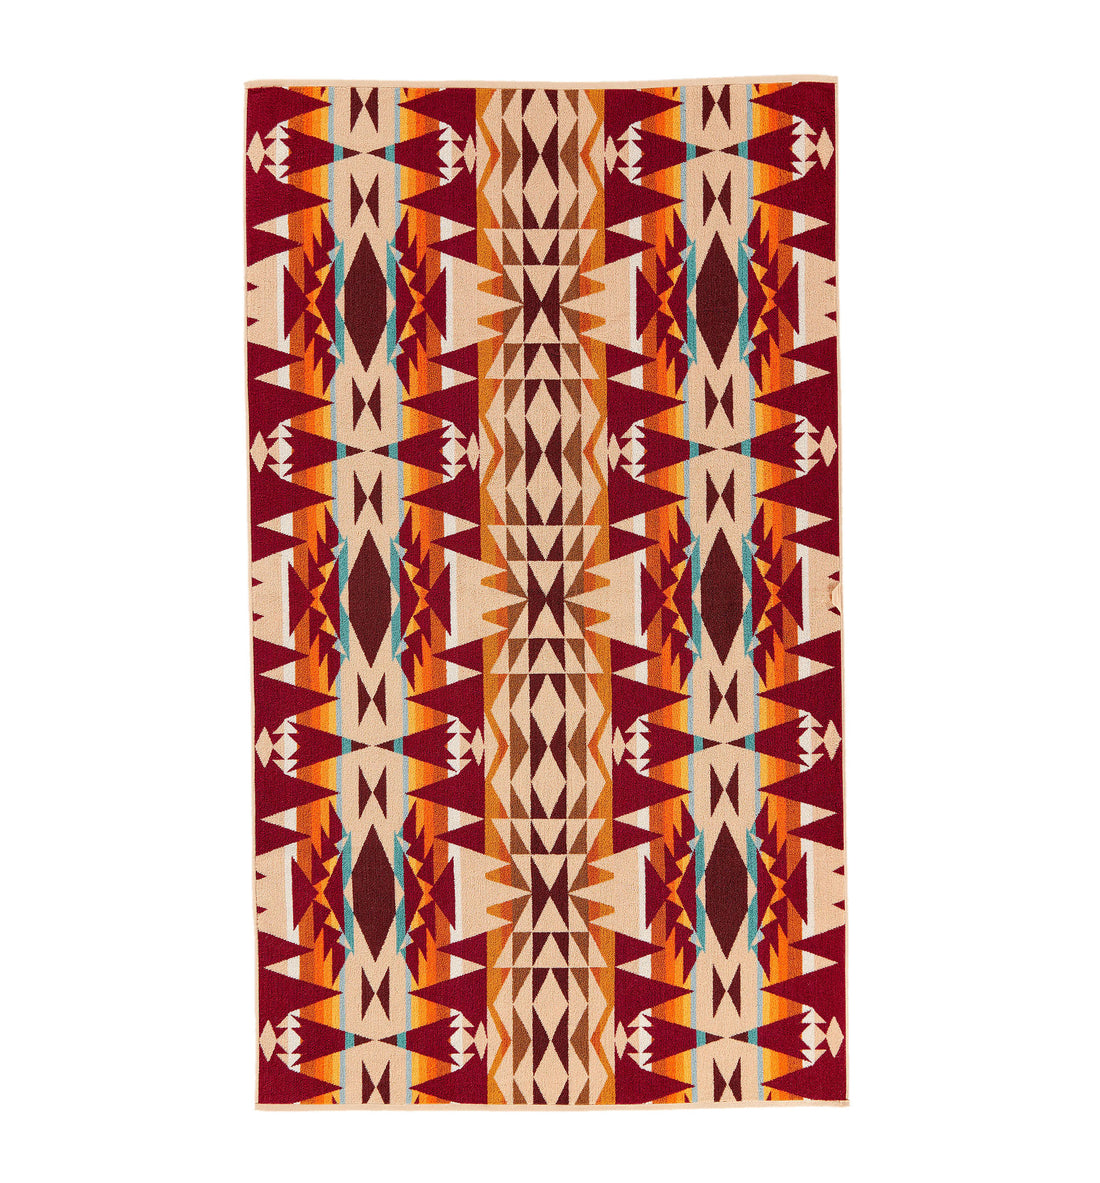 Pendleton Woolen Mills Oversized Jacquard Towel - Cresent Butte - Outdoor Living/Travel - Iron and Resin